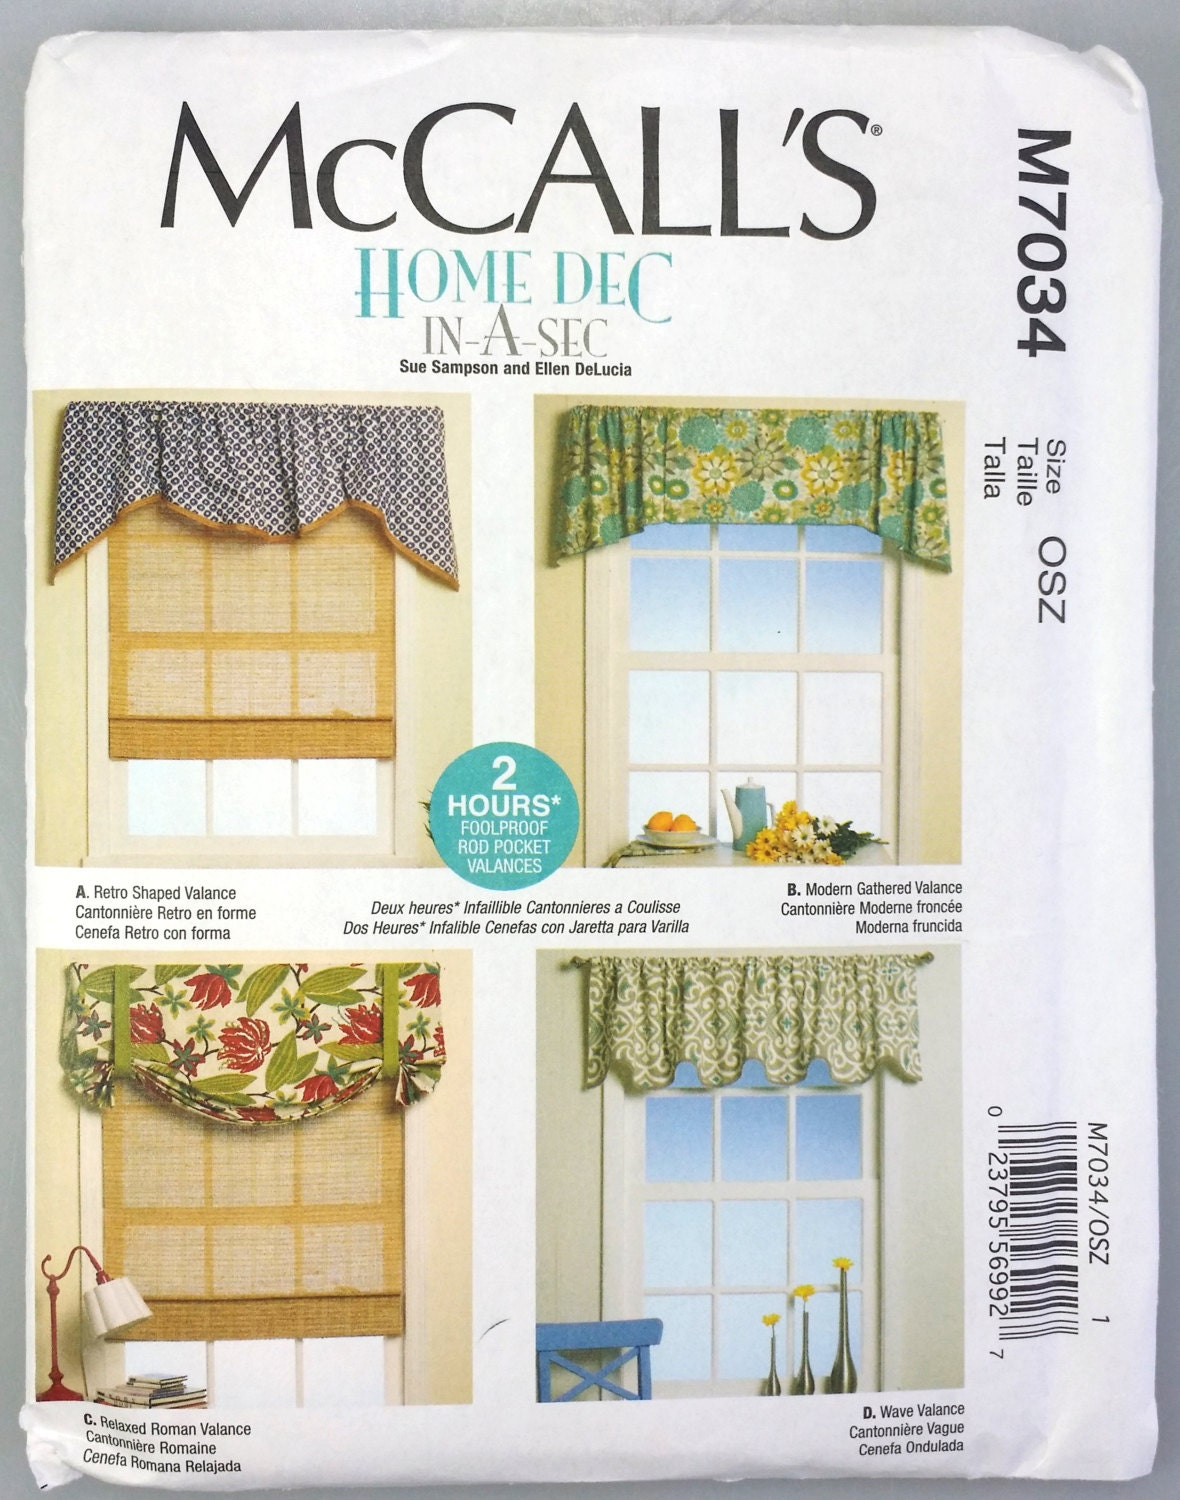 Mccalls home dec in a sec window valance by for Professional window treatment patterns